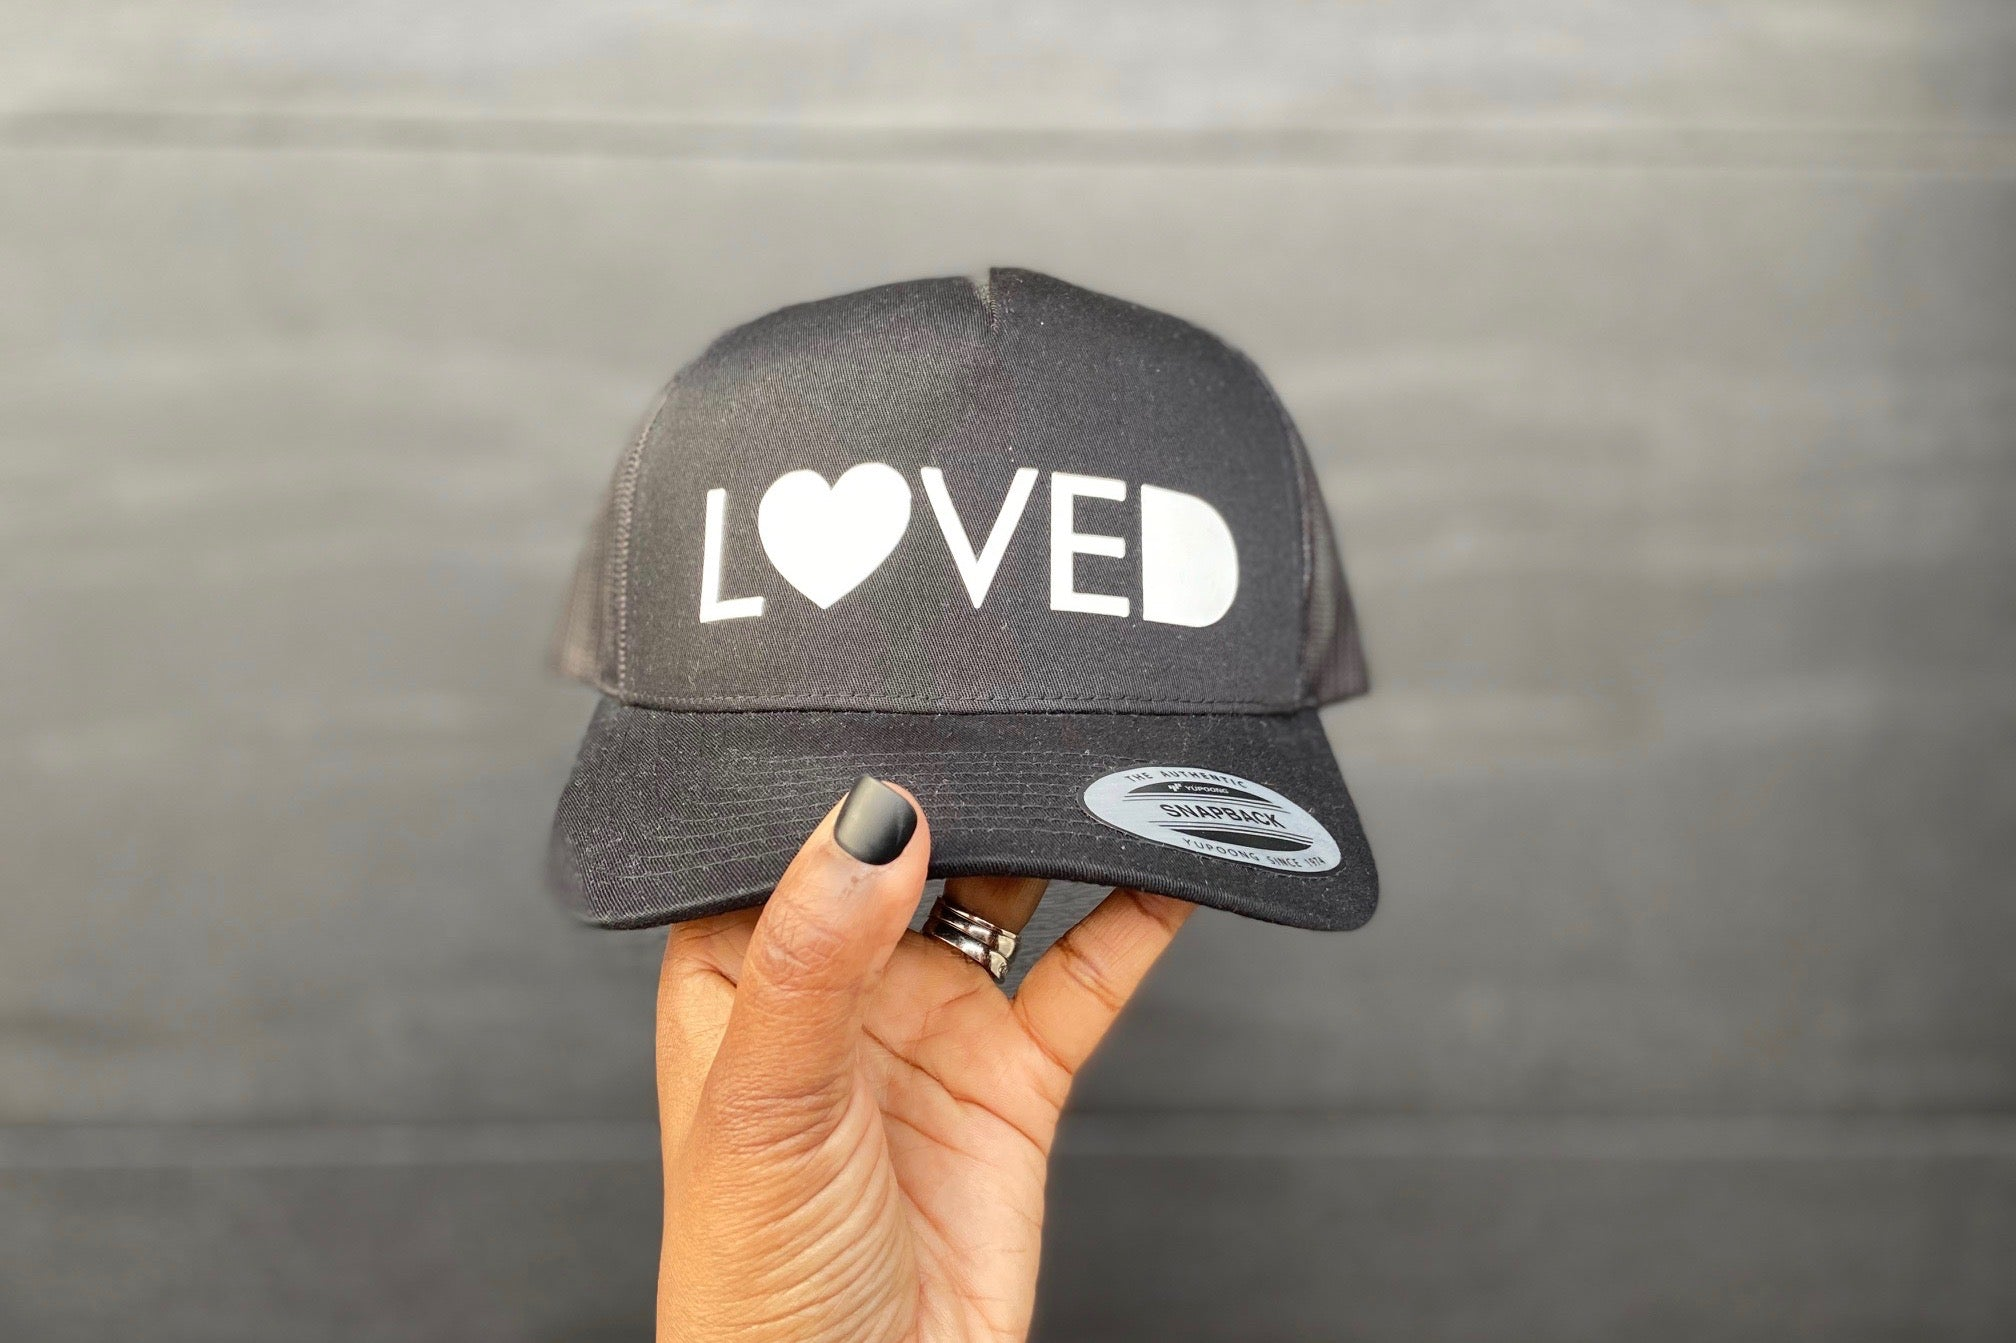 LOVED Snapback Retro Trucker Cap BLACK